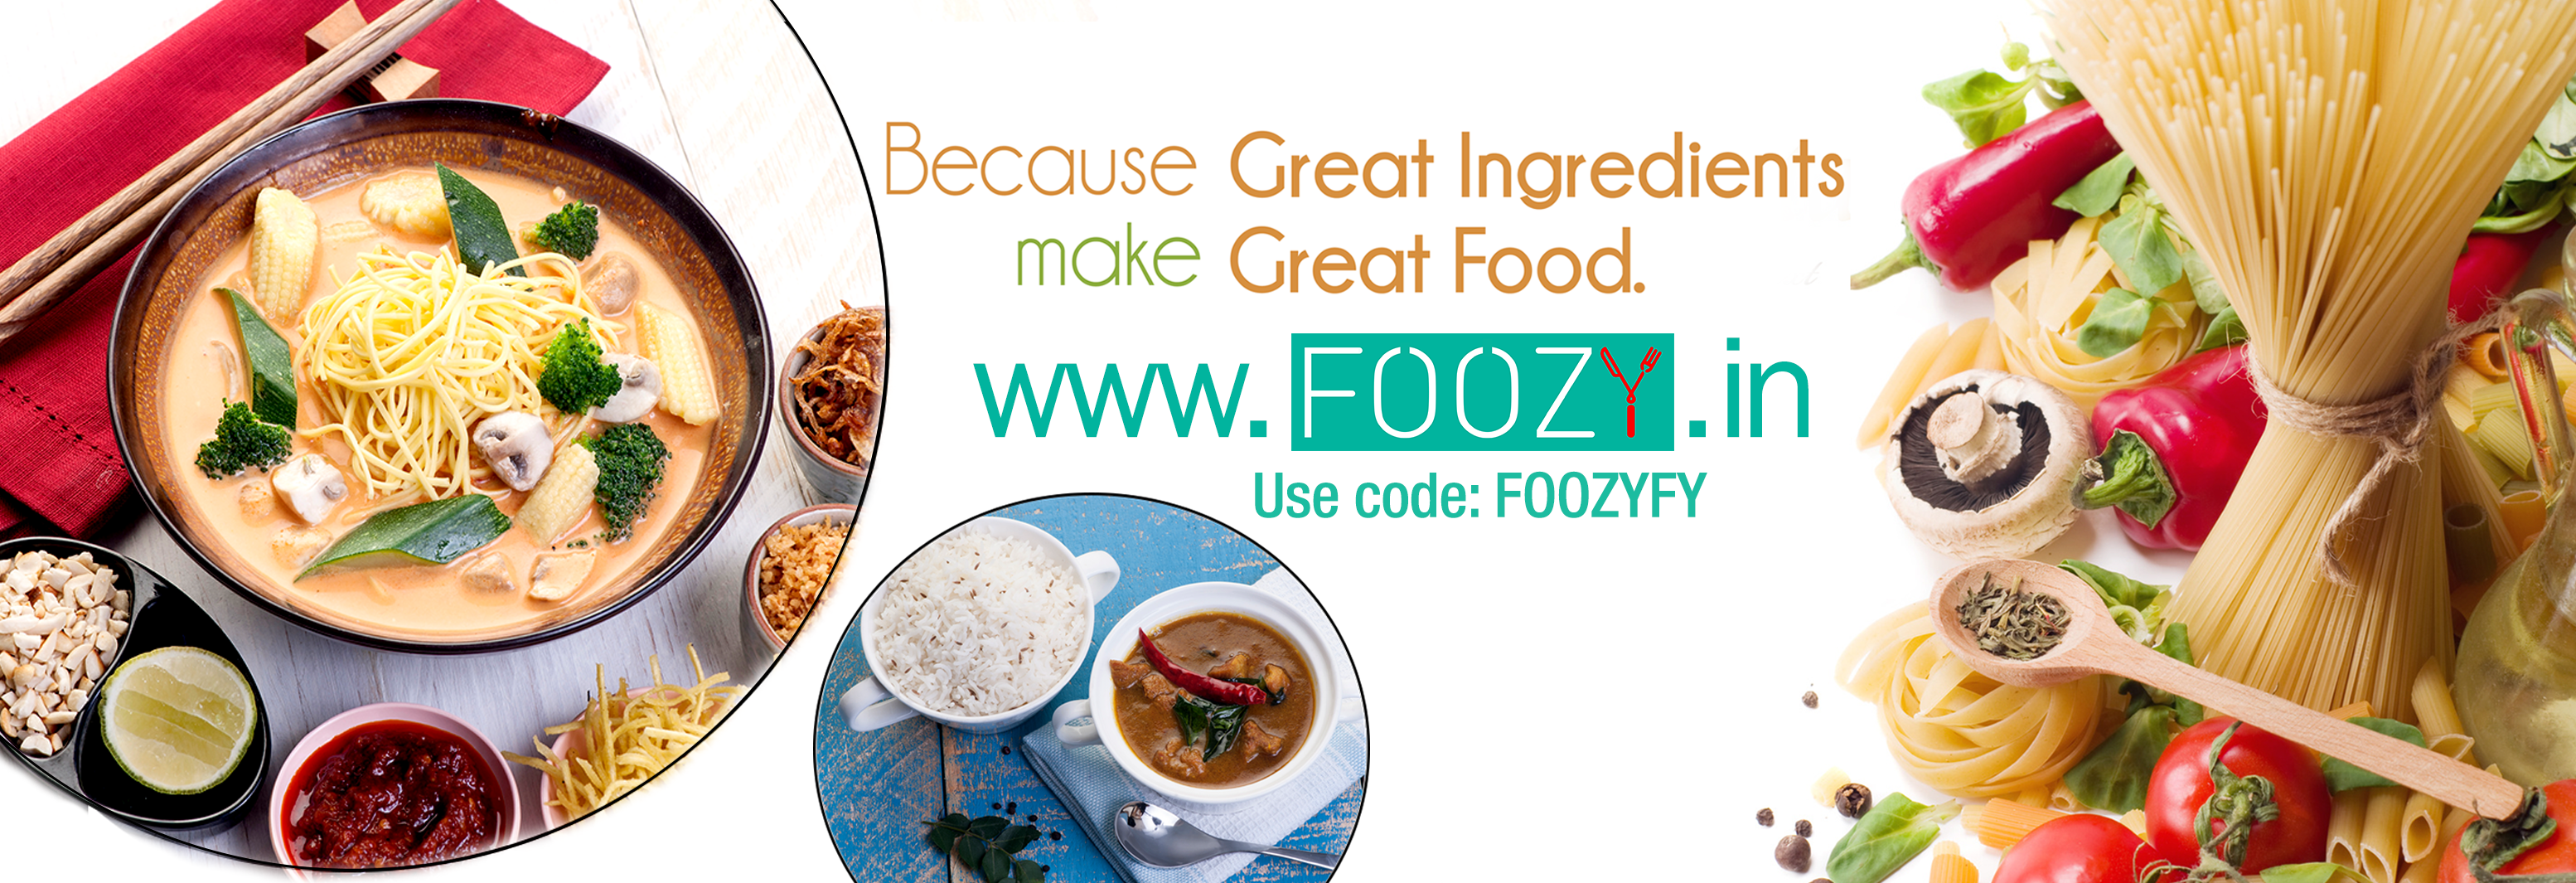 New Food Ordering Website With Promo Code